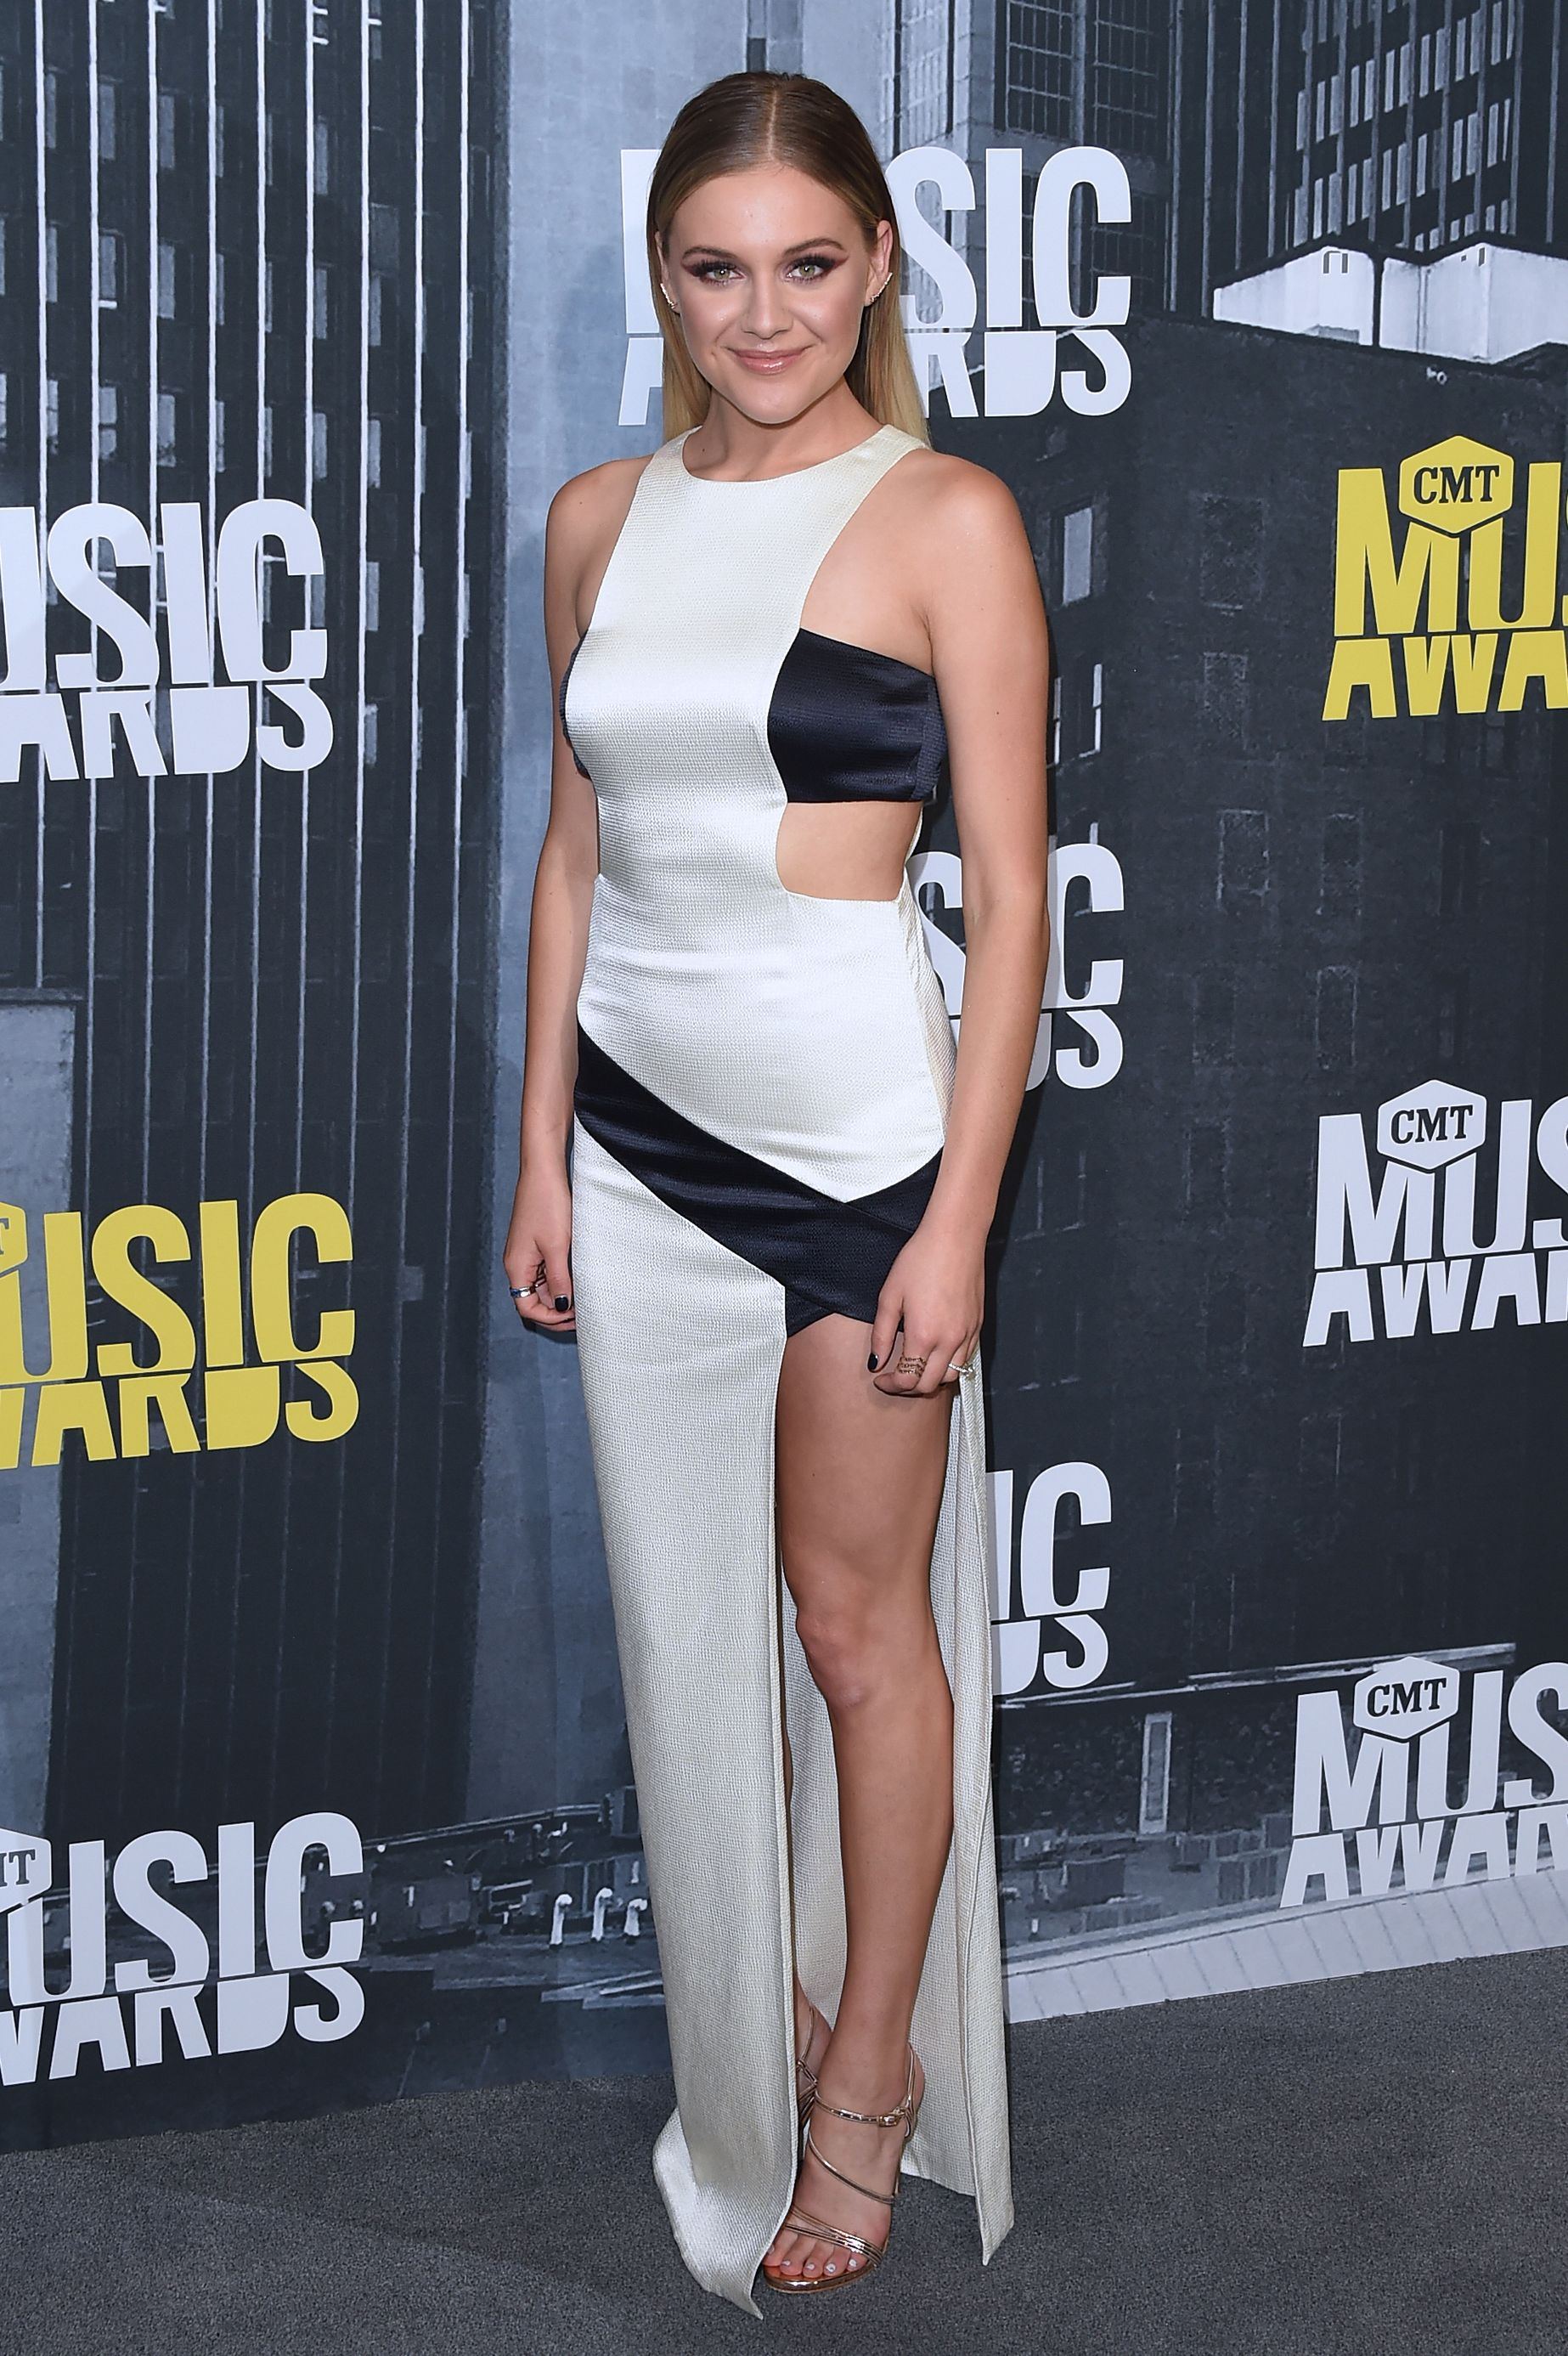 Best Dressed Women On The 2017 Cmt Music Awards Red Carpet